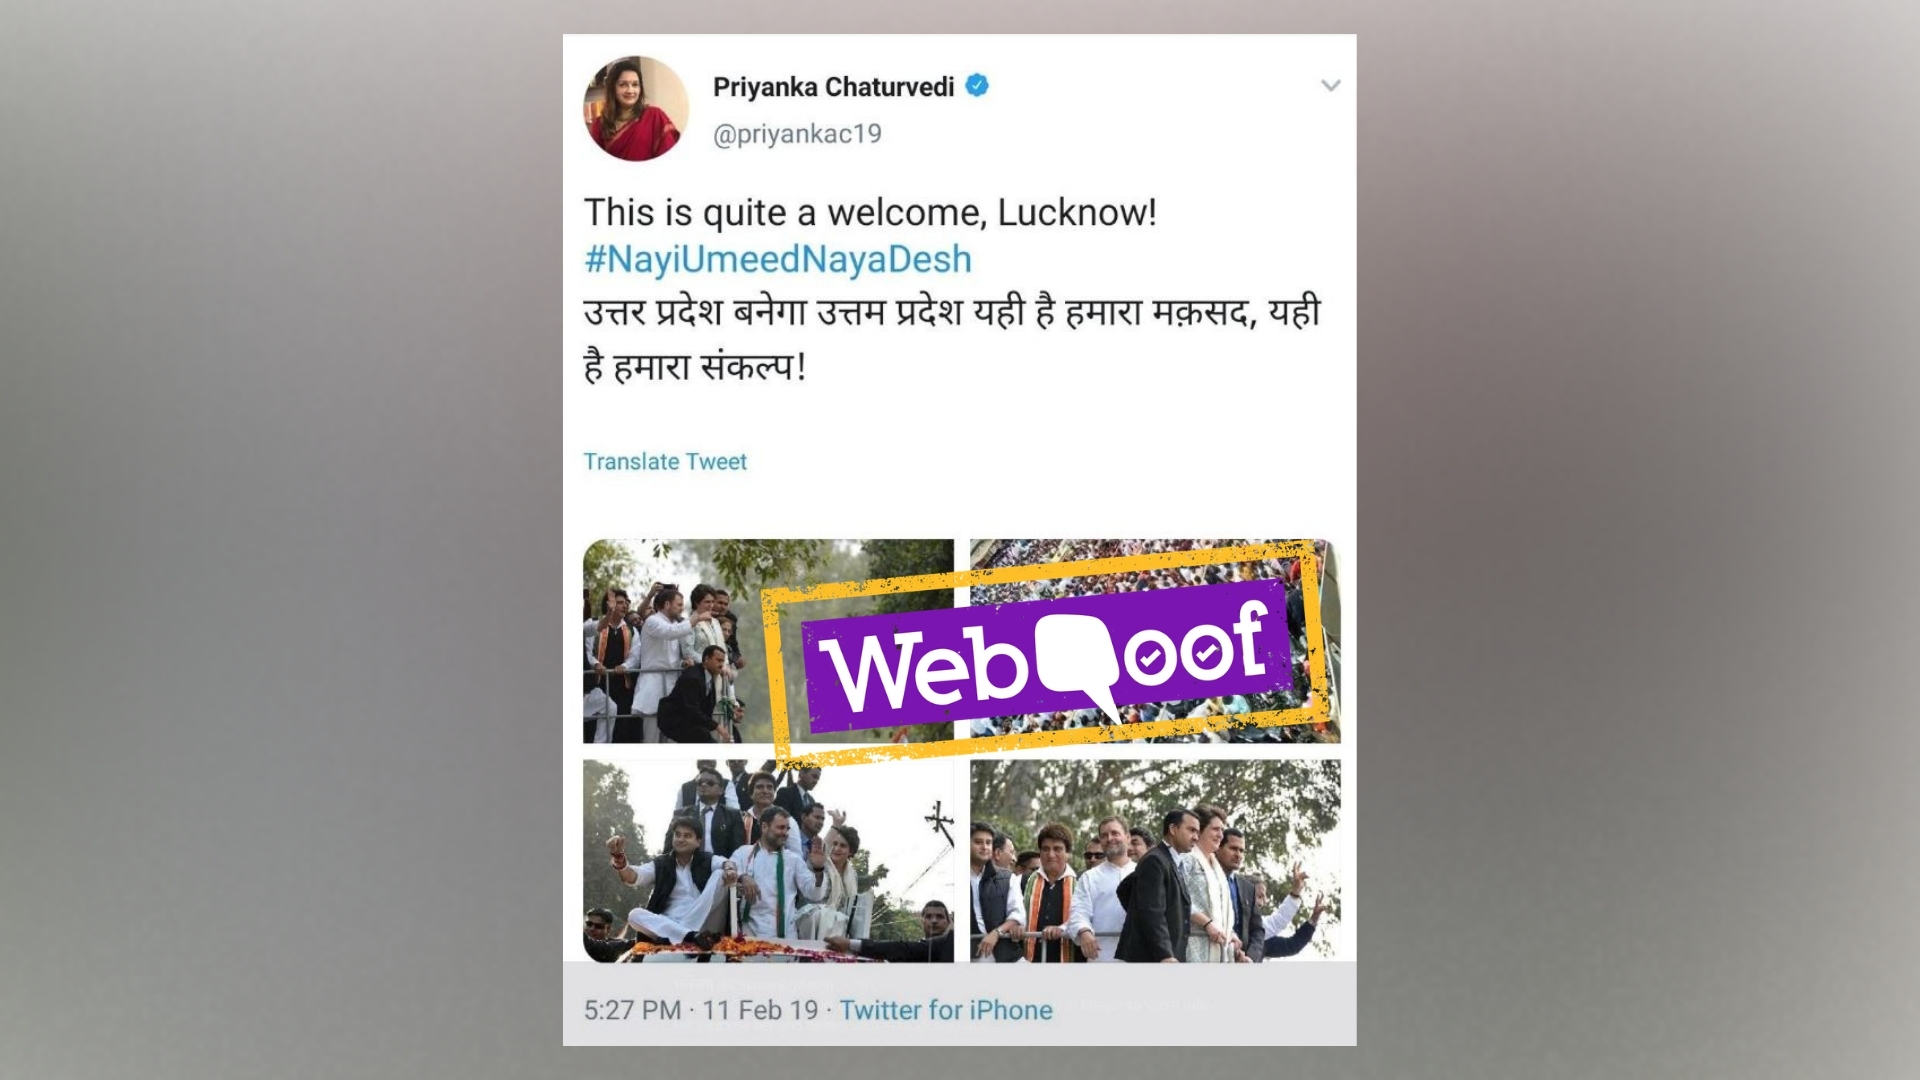 Cong Shares Old Photo to Show Crowd at Priyanka's Lucknow Roadshow